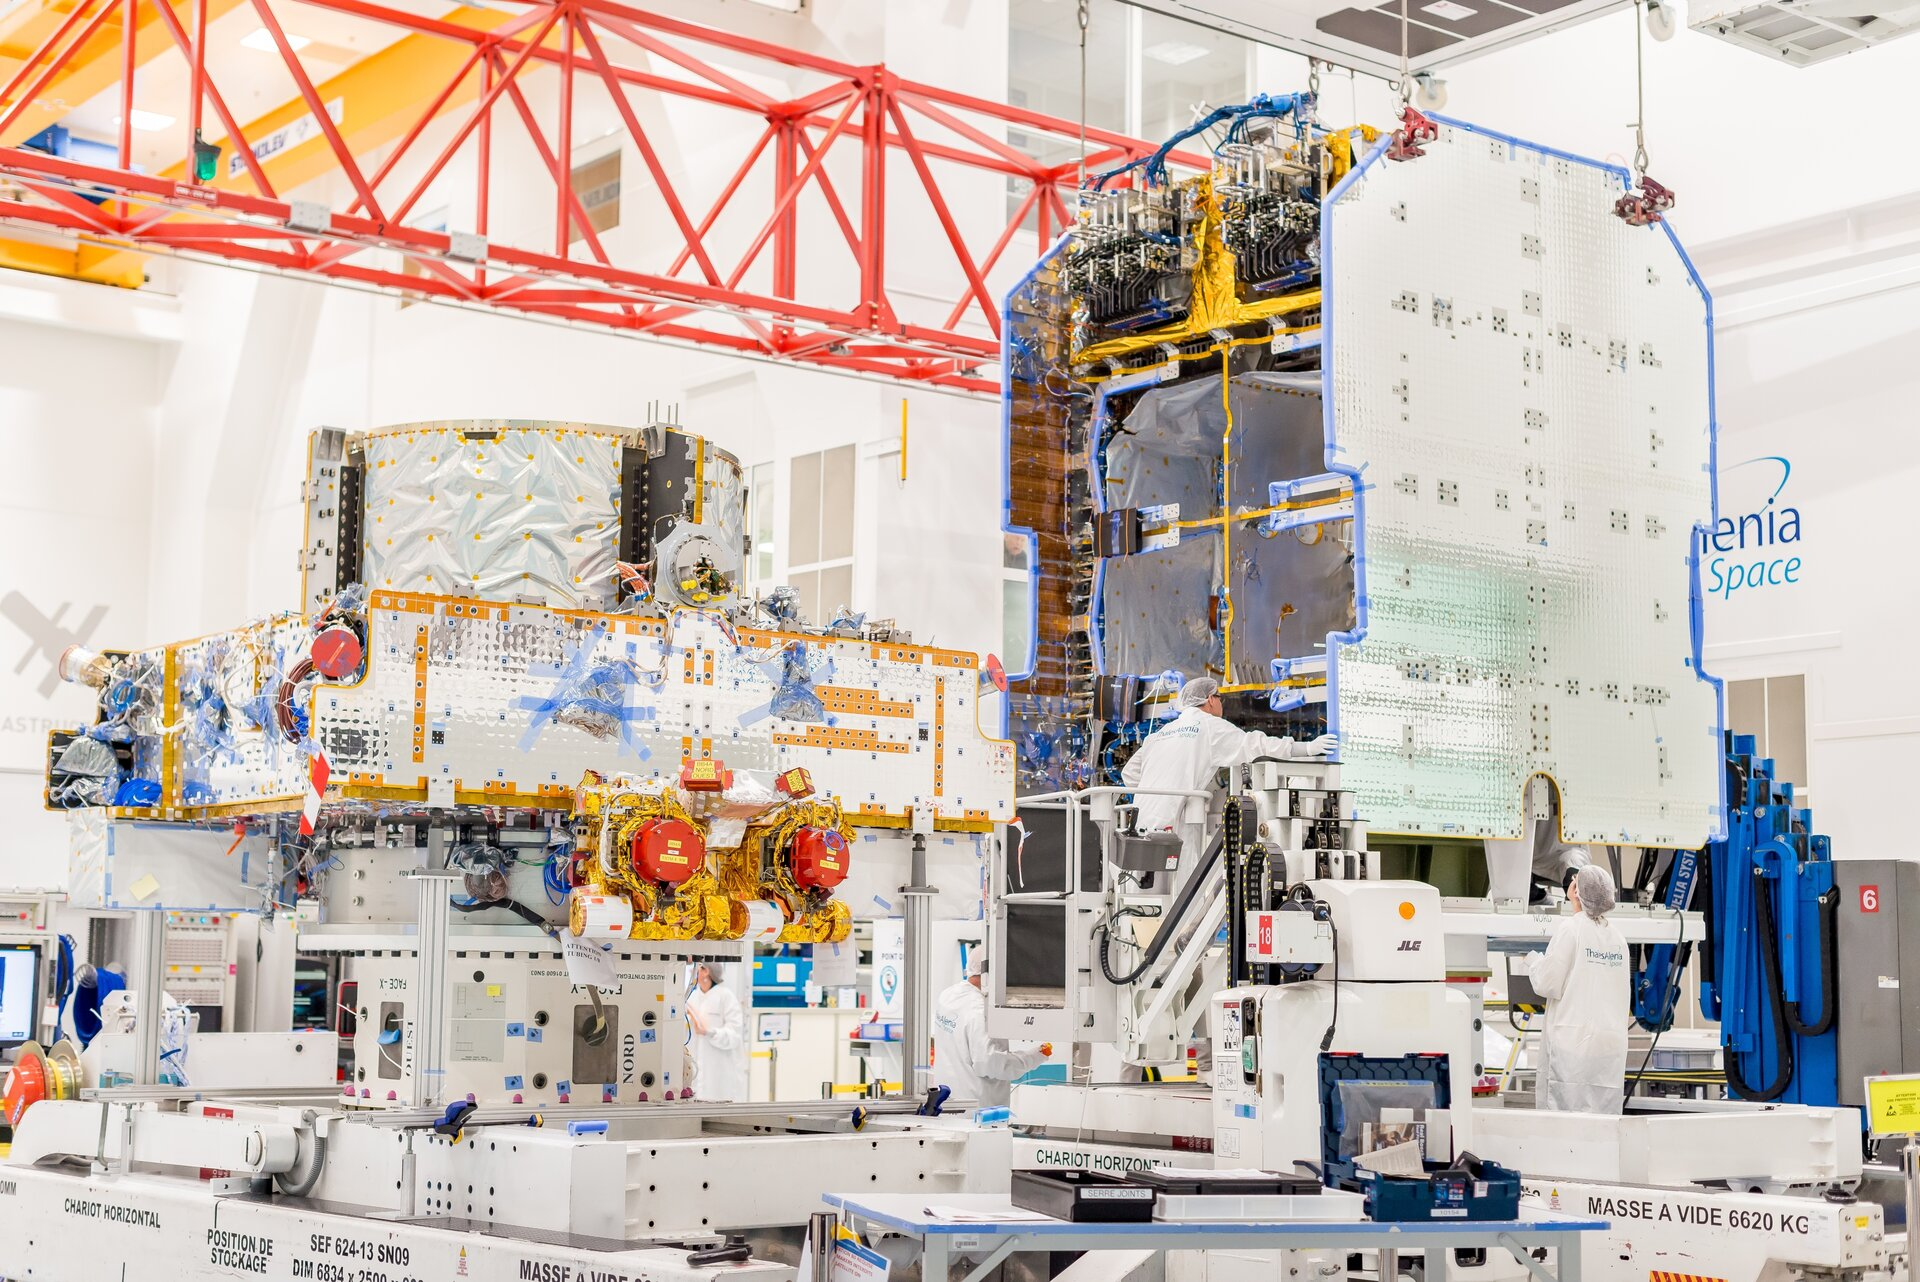 First Spacebus Neo payload and service module side-by-side, before mating